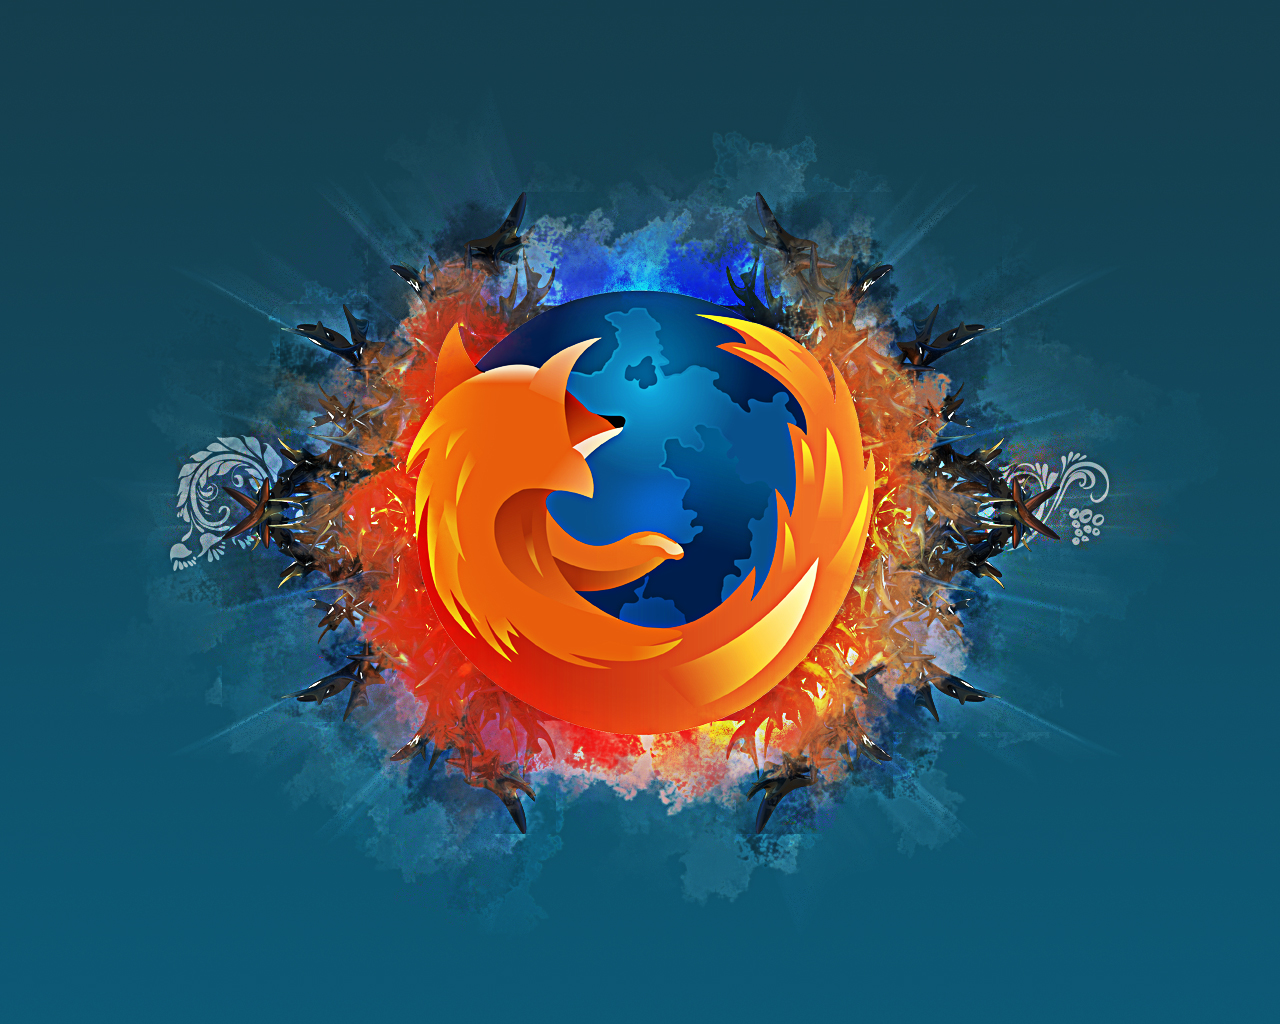 http://1.bp.blogspot.com/_zLmUbR8rv9s/TU-rzkHPtEI/AAAAAAAAAM4/7-Q49bnwrHM/s1600/abstract-firefox-wallpaper.jpg